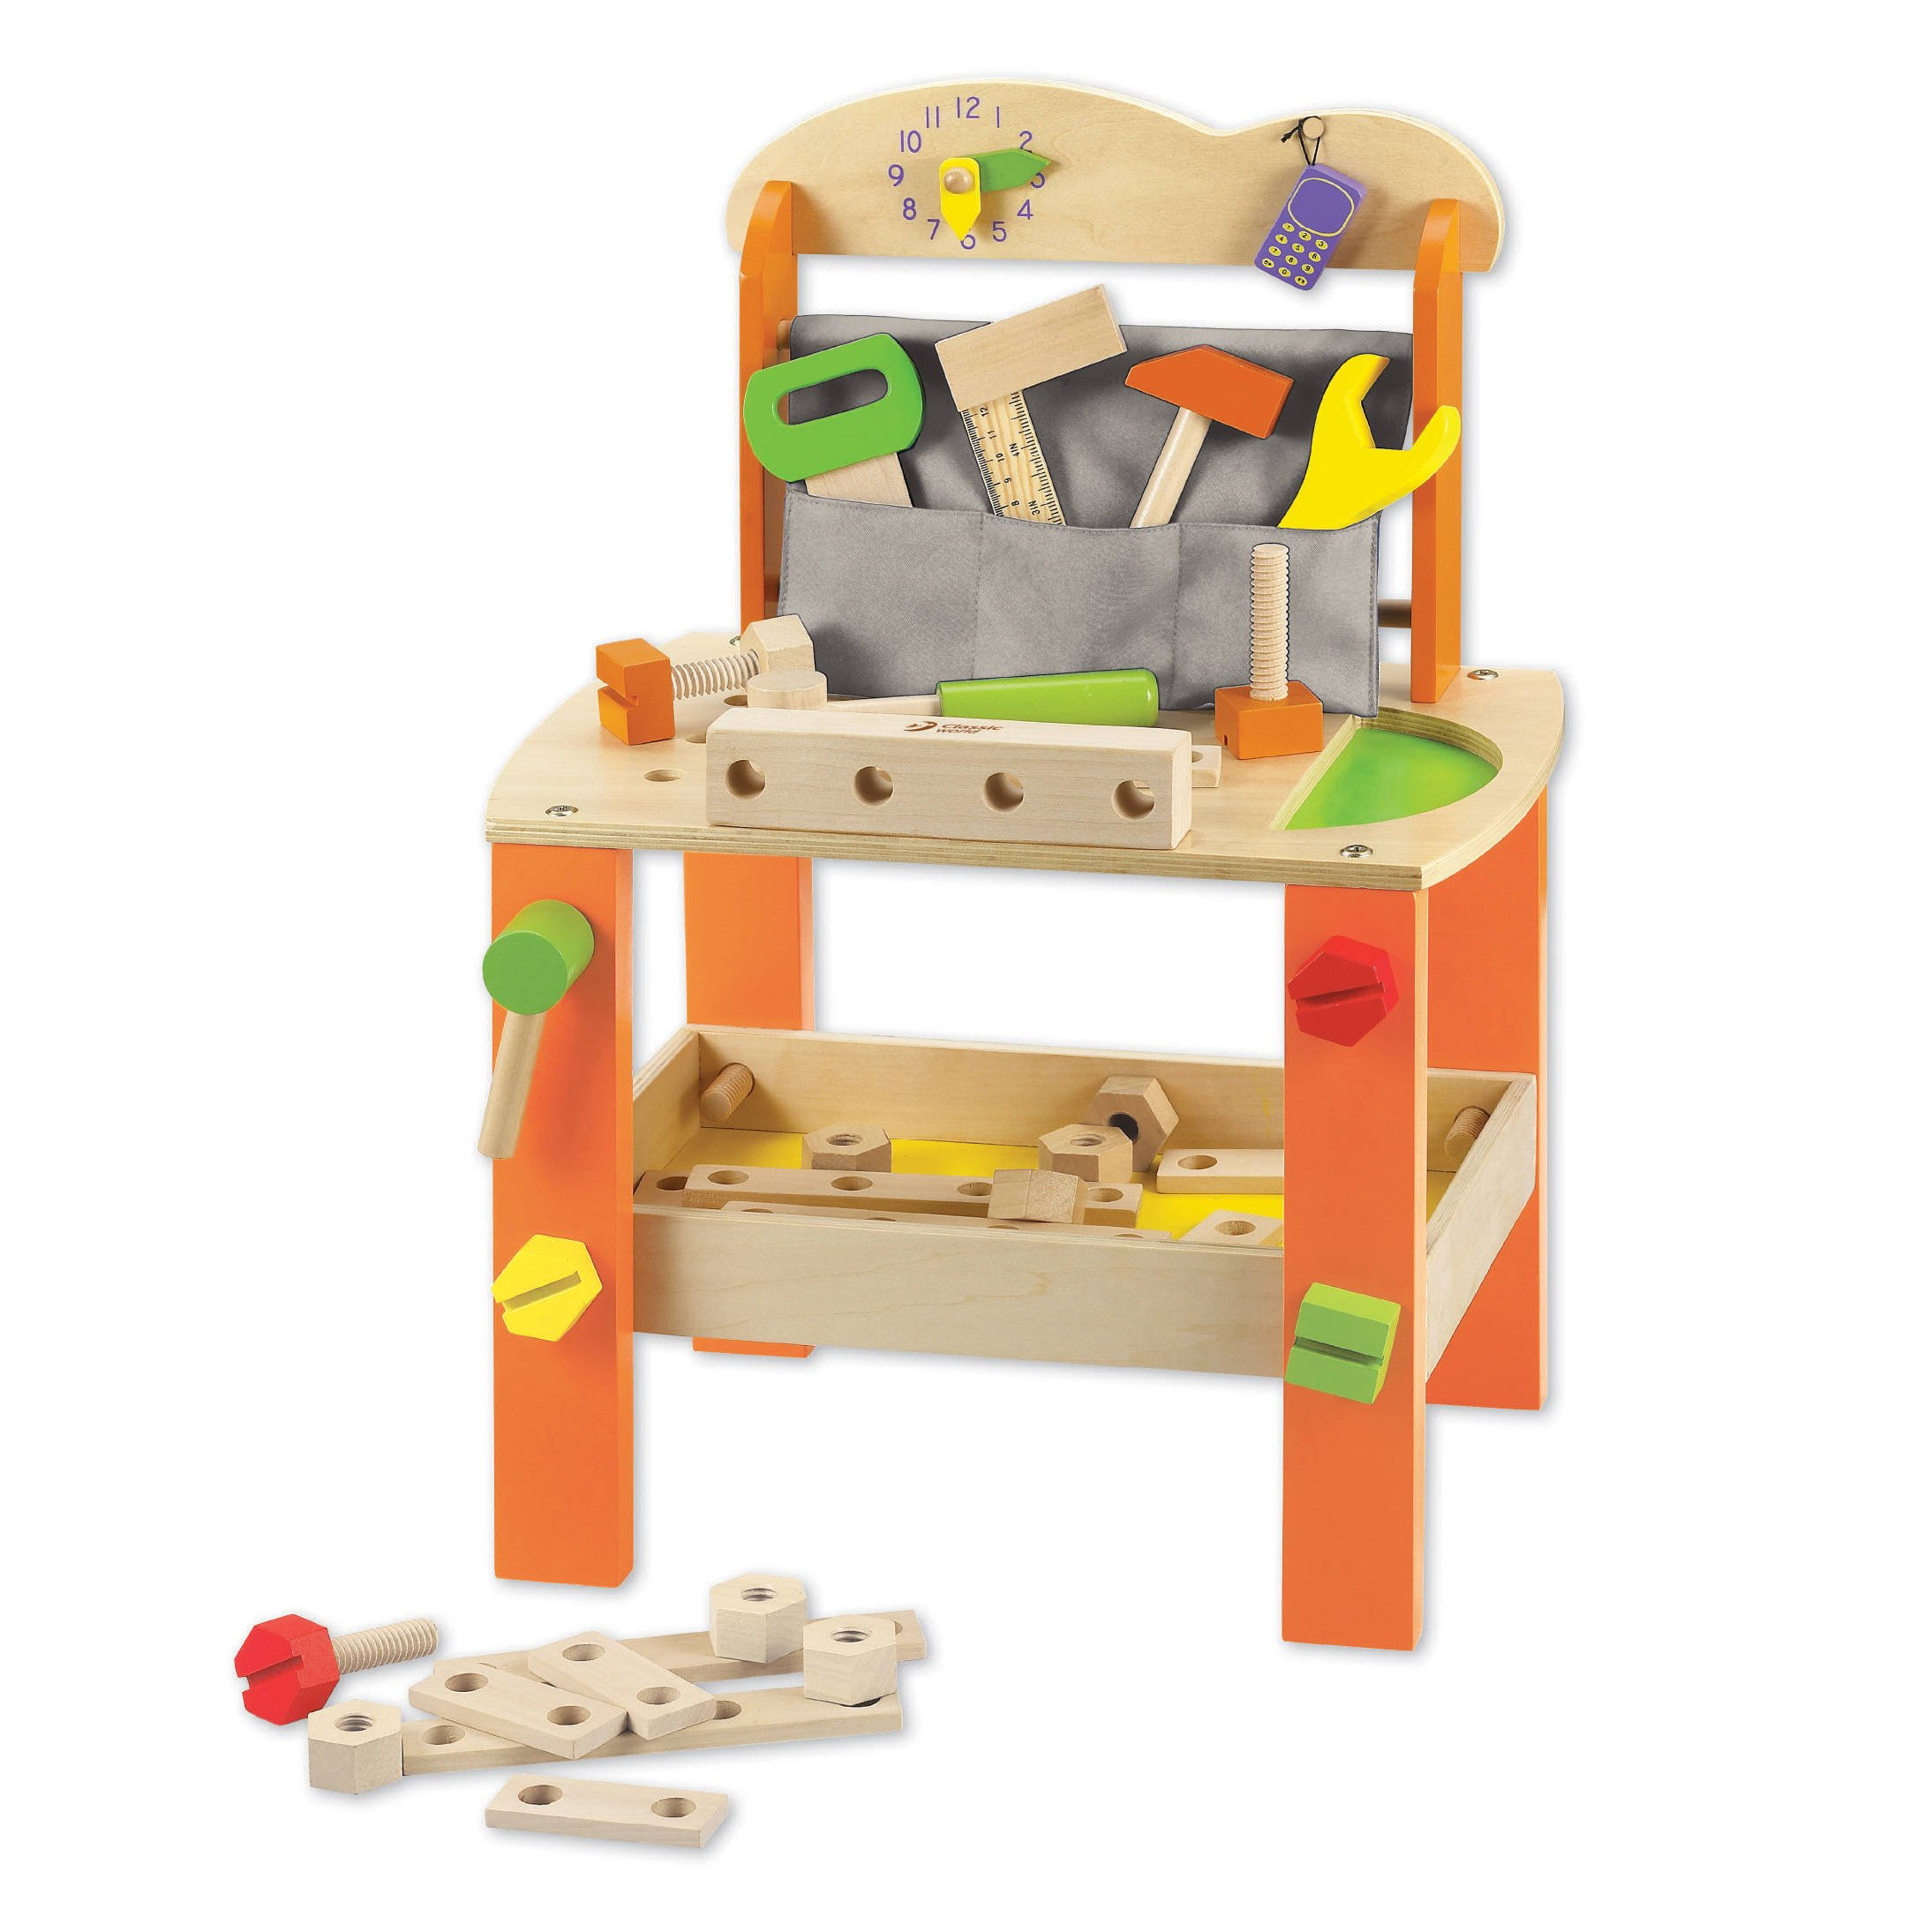 Let's Play Fix It With Solid Wood Project Workbench Kids Pretend Play Building Set, Kids Workbench